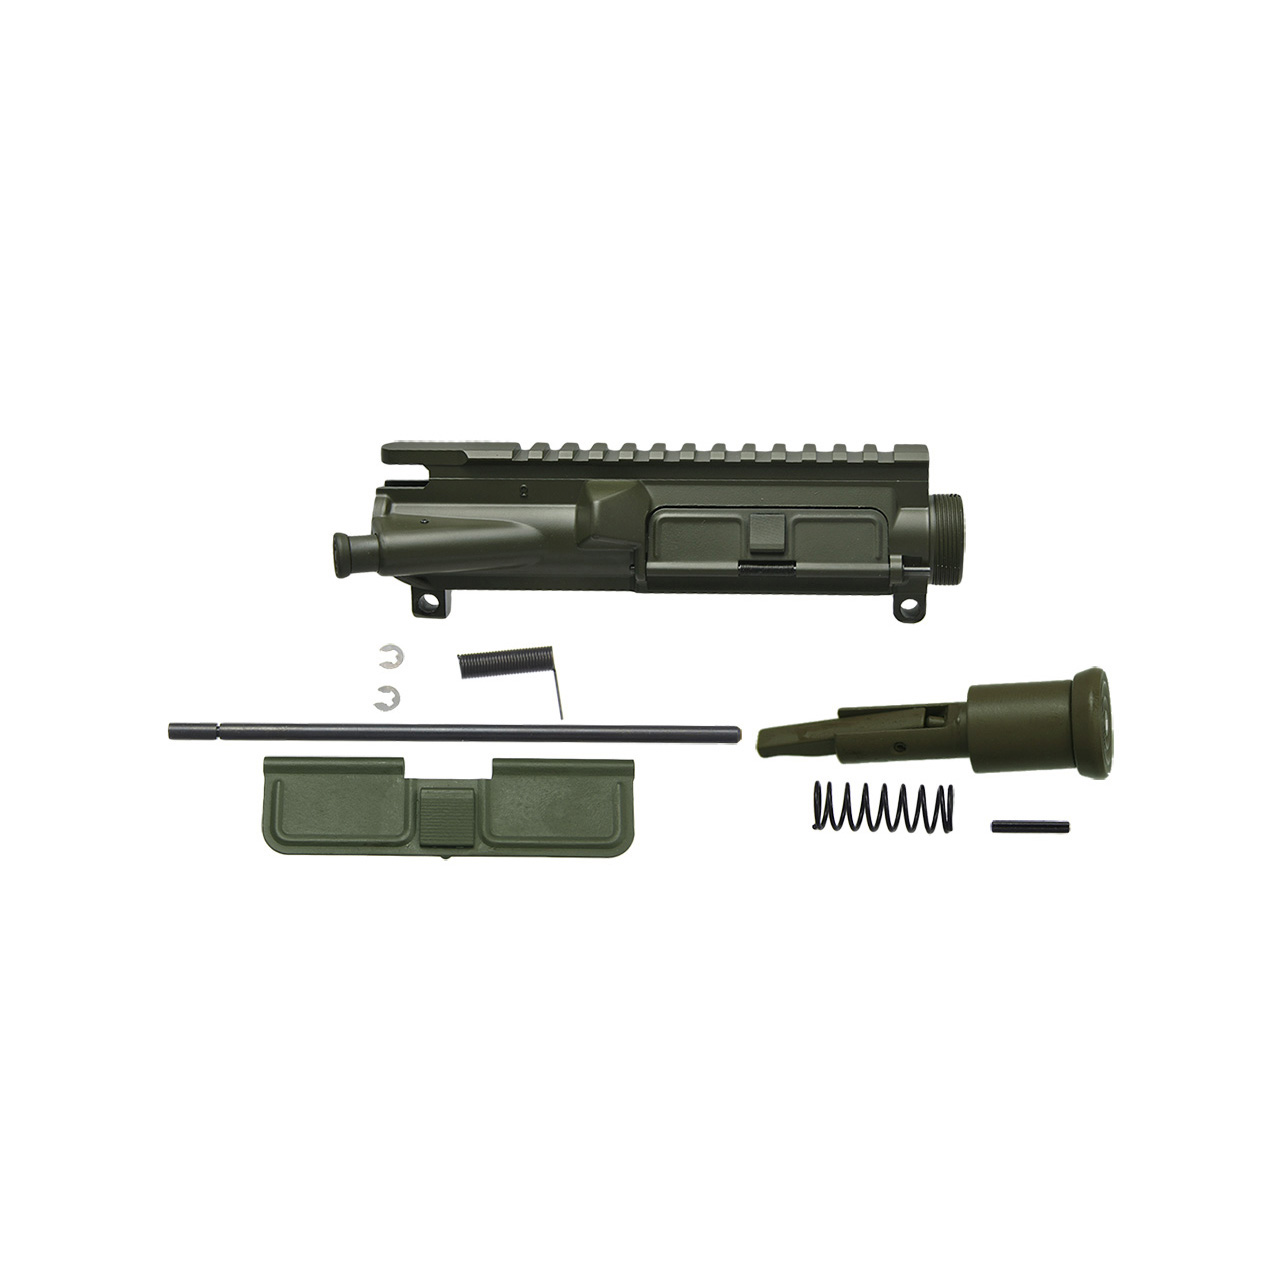 AR15 complete upper receiver w/ forward assist and dust cover, OD green cerakote, Charging Handle